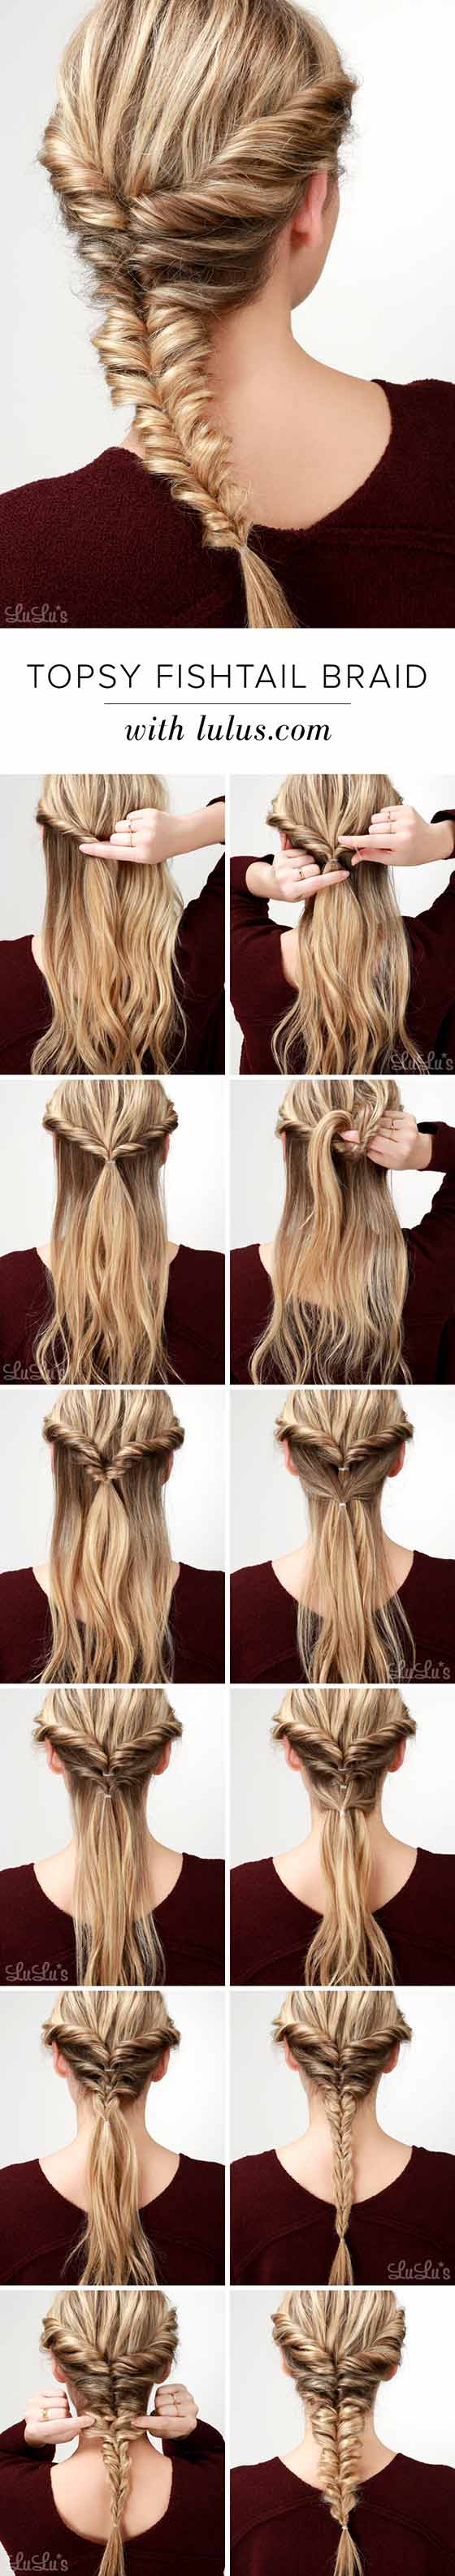 Topsy-Fishtail-Braid